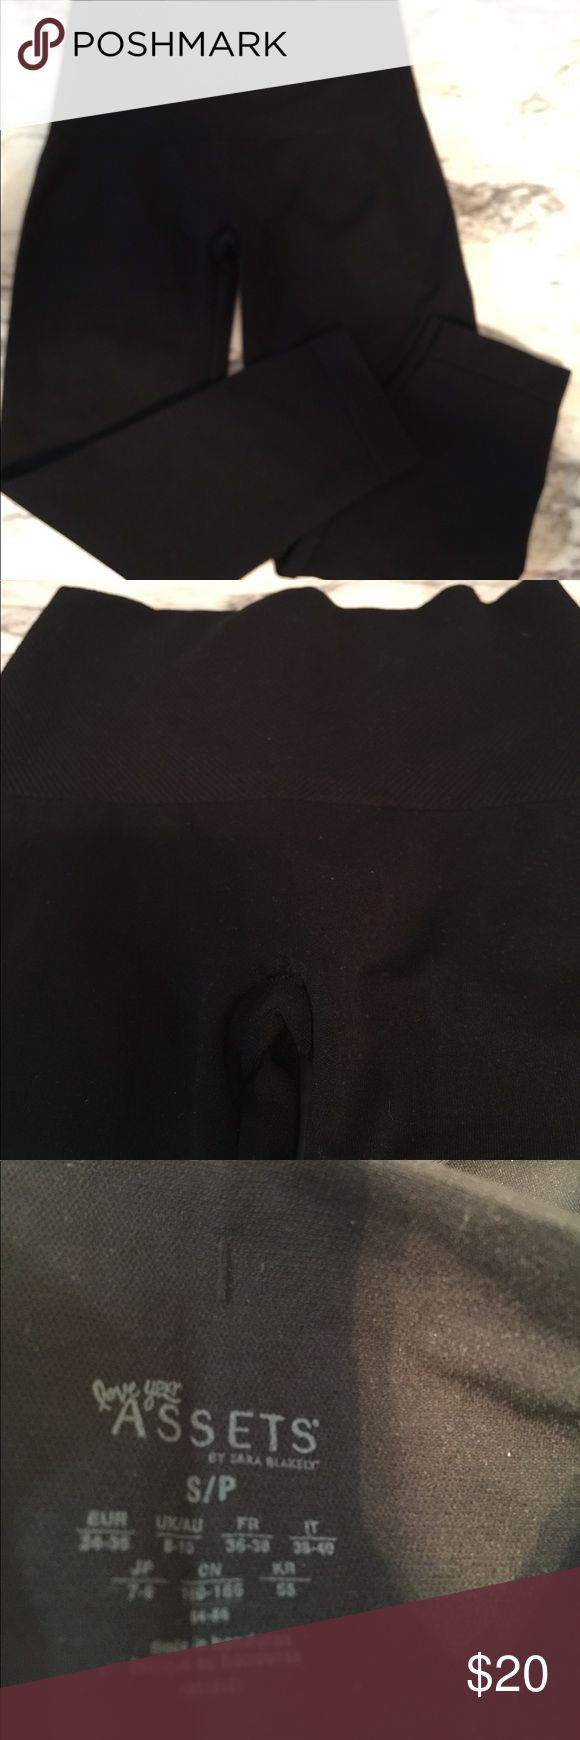 Black Love Your Assets spanx  knee length Length is 25 inches. Size is S/P . Assets By Spanx Intimates & Sleepwear Shapewear